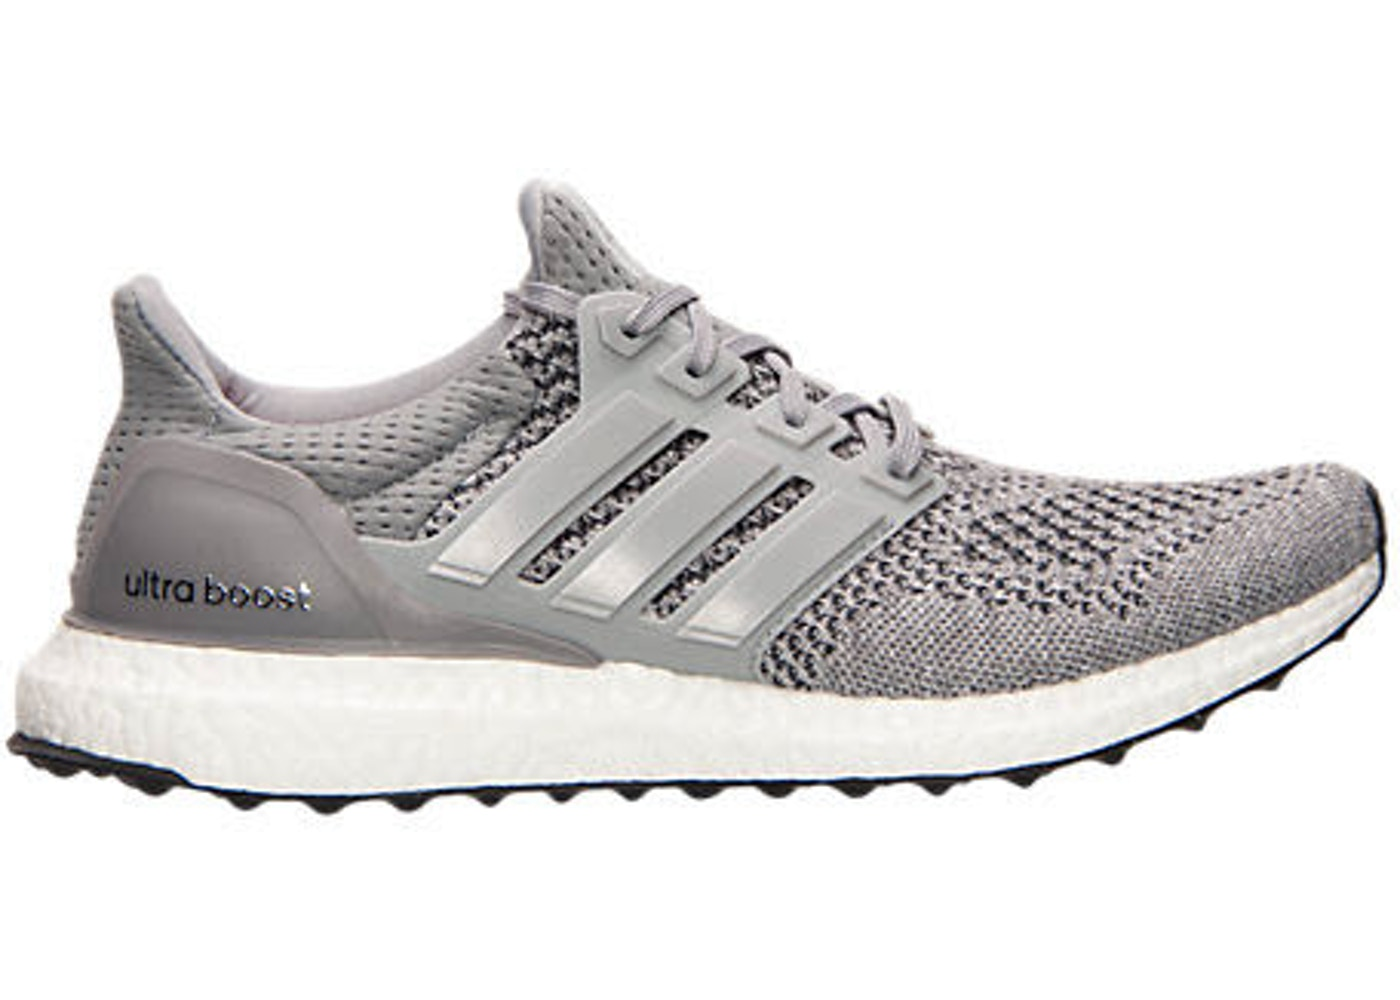 2e4a12ef0a3ad adidas Ultra Boost 1.0 Wool Grey - S77510